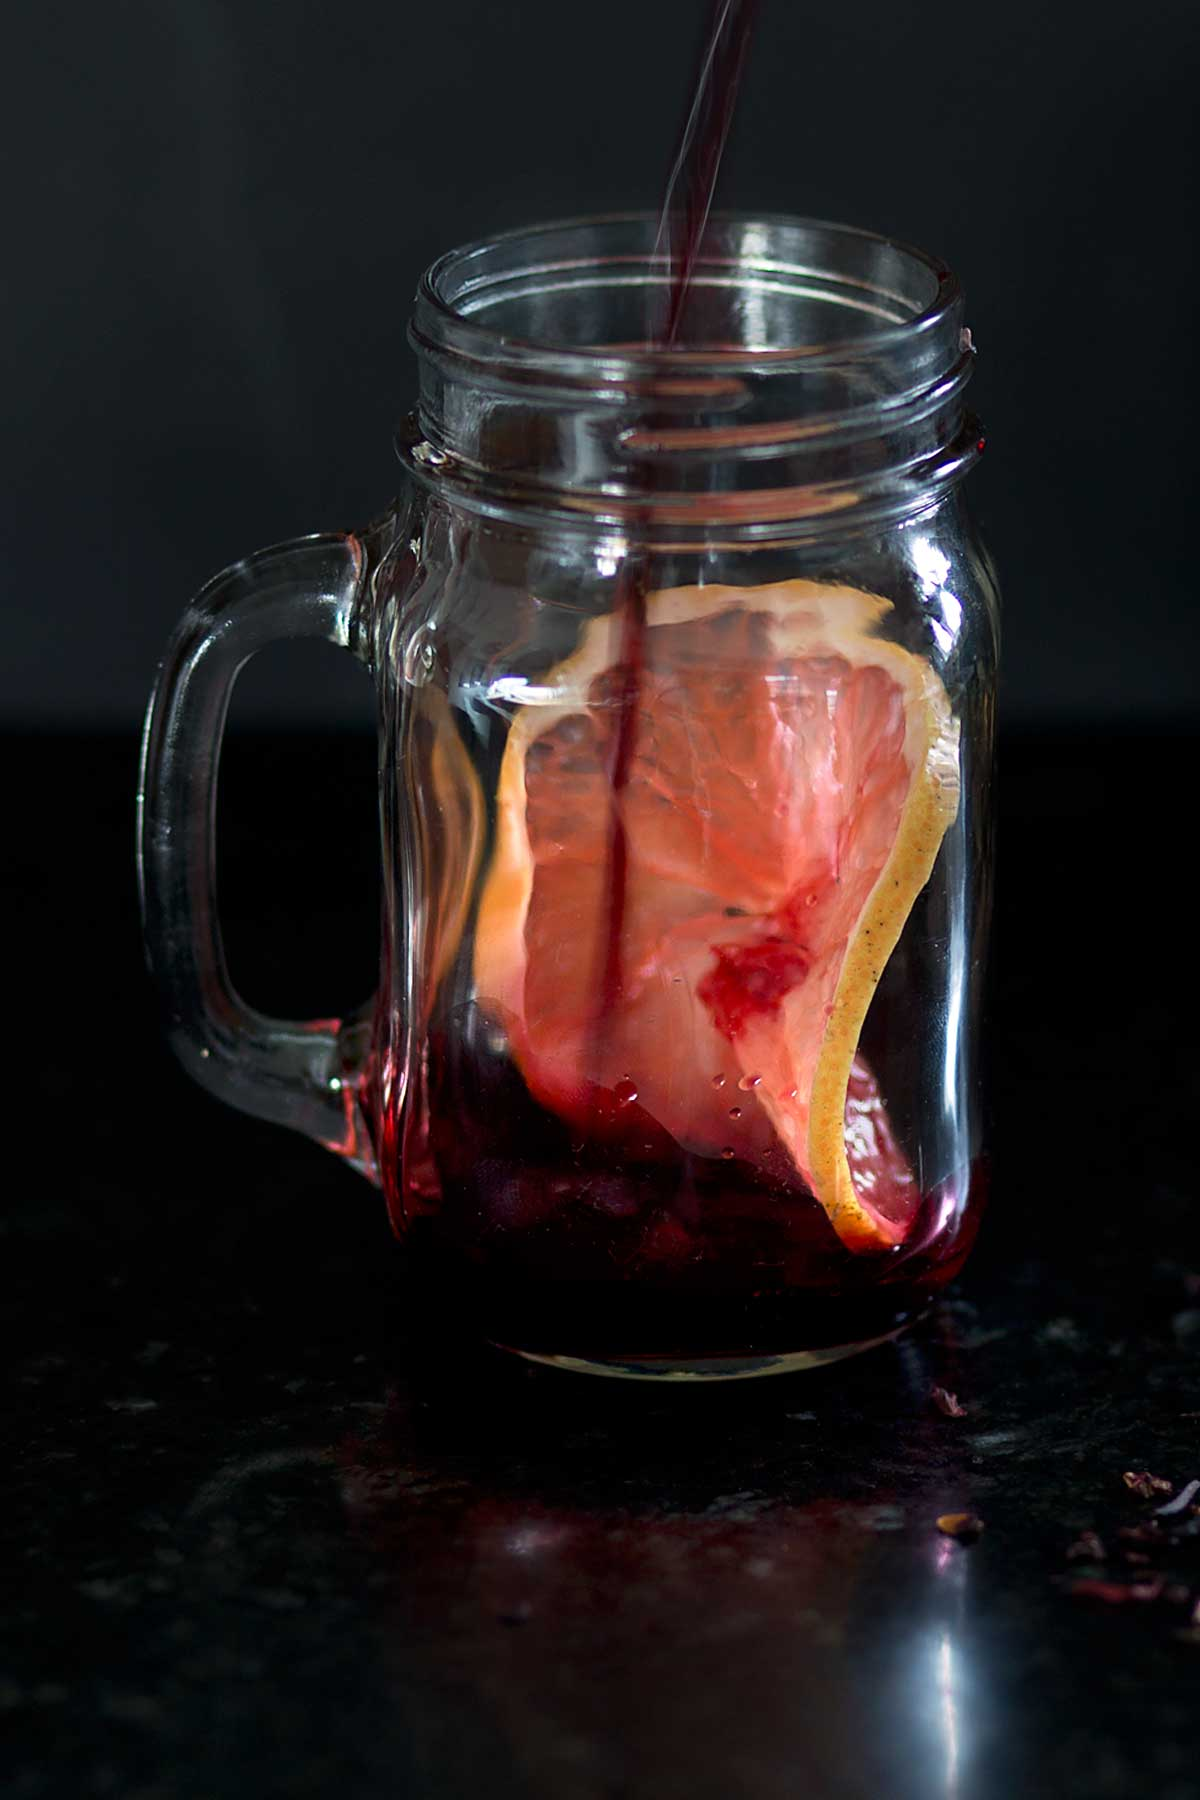 SImple Homemade Hibiscus Syrup for a fresh Grapefruit and Hibiscus Spritzer